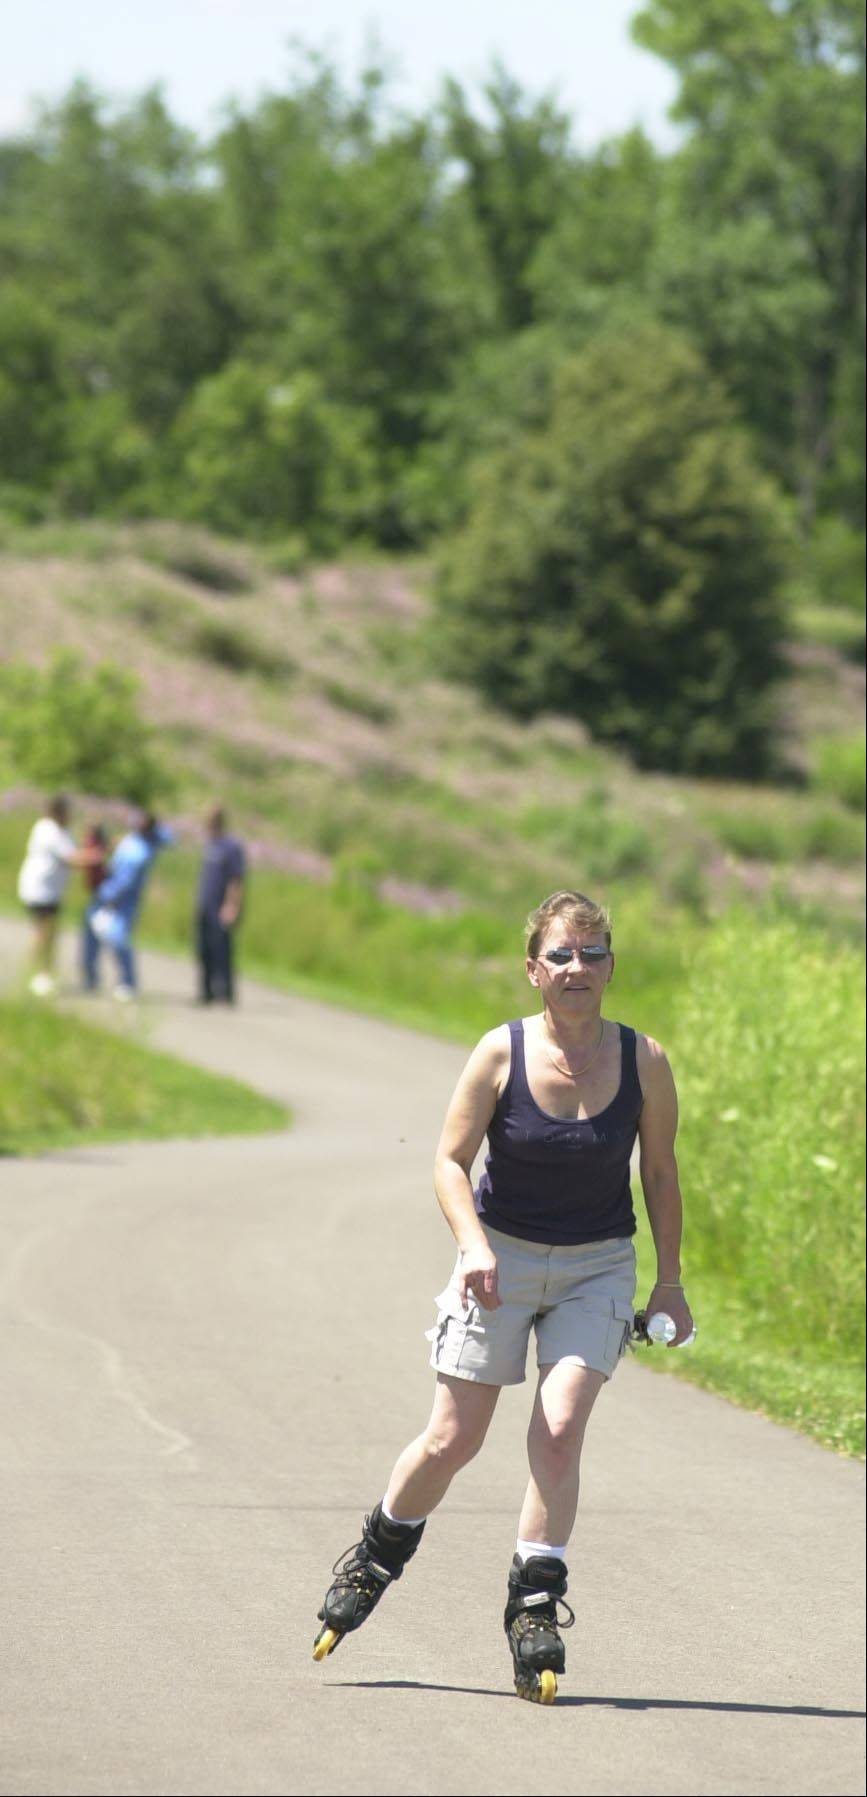 Inline skaters and hikers can share public trails without incident by following trail etiquette.